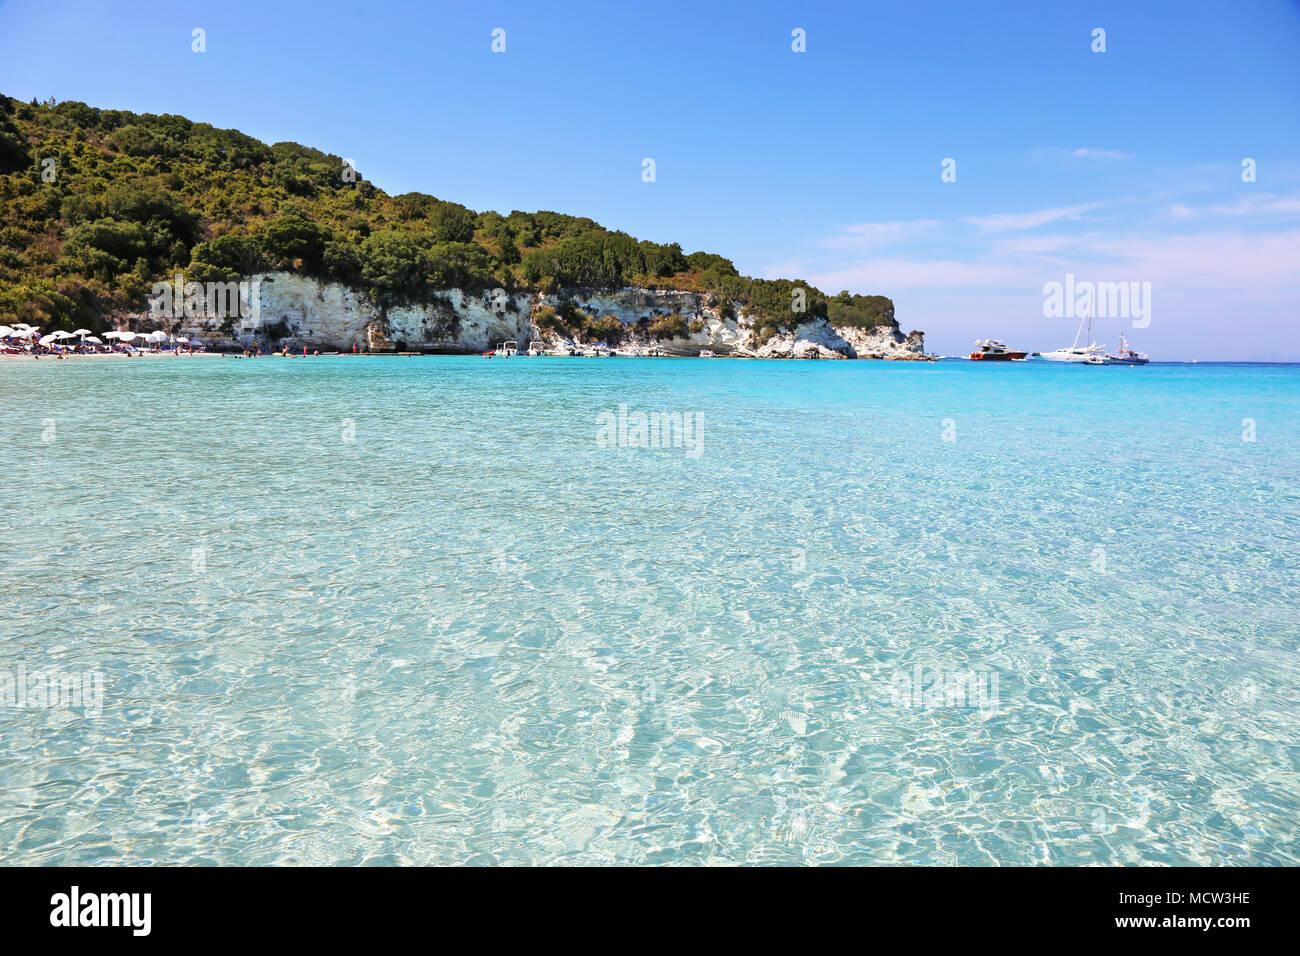 landscape of Voutoumi beach at Antipaxos island Greece - Stock Image